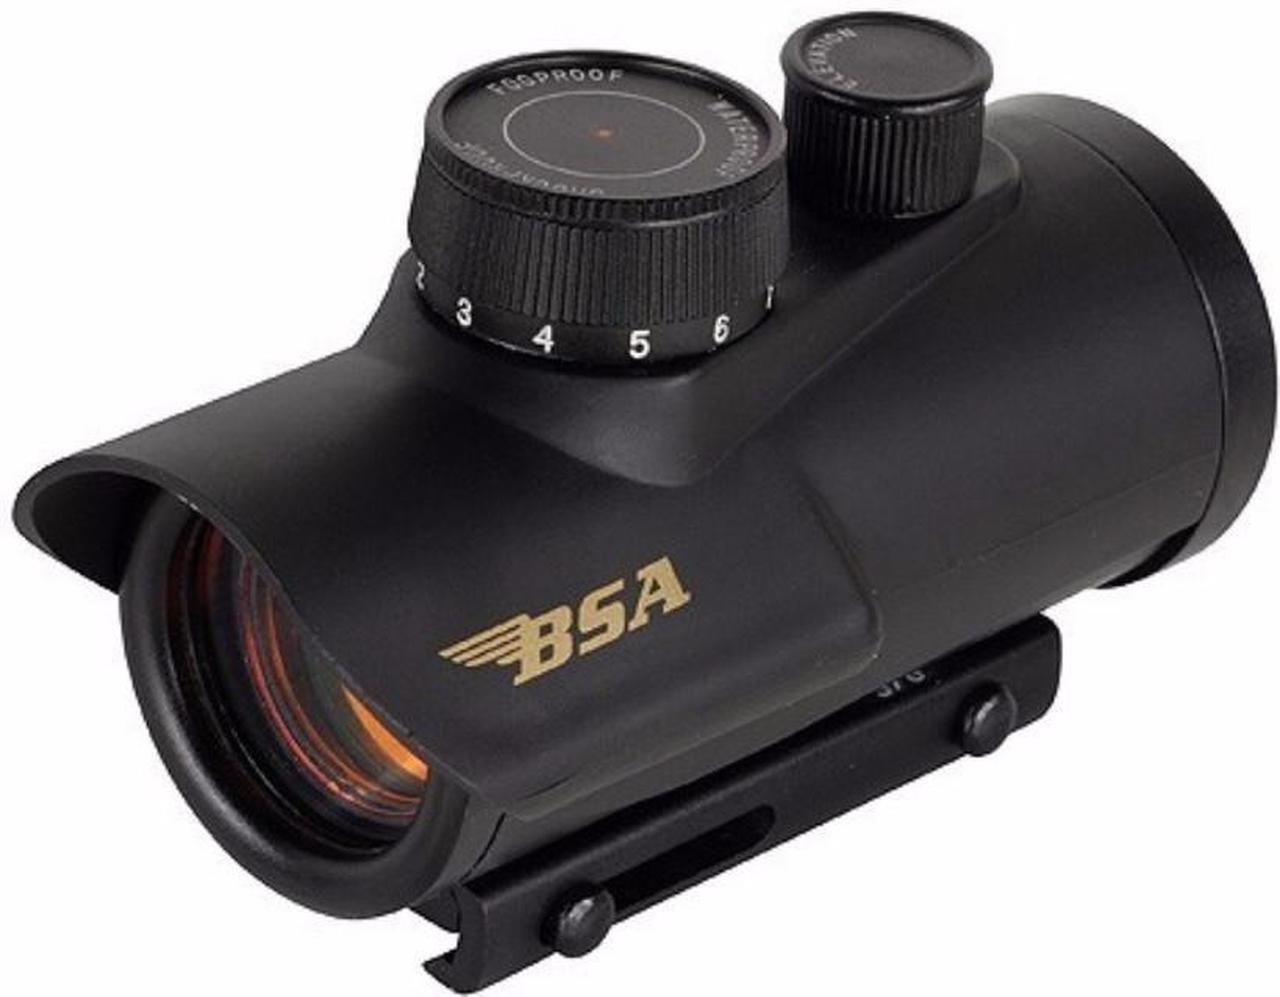 BSA Optics 30mm Matte Black Finish Red Dot Sight for deer hunting